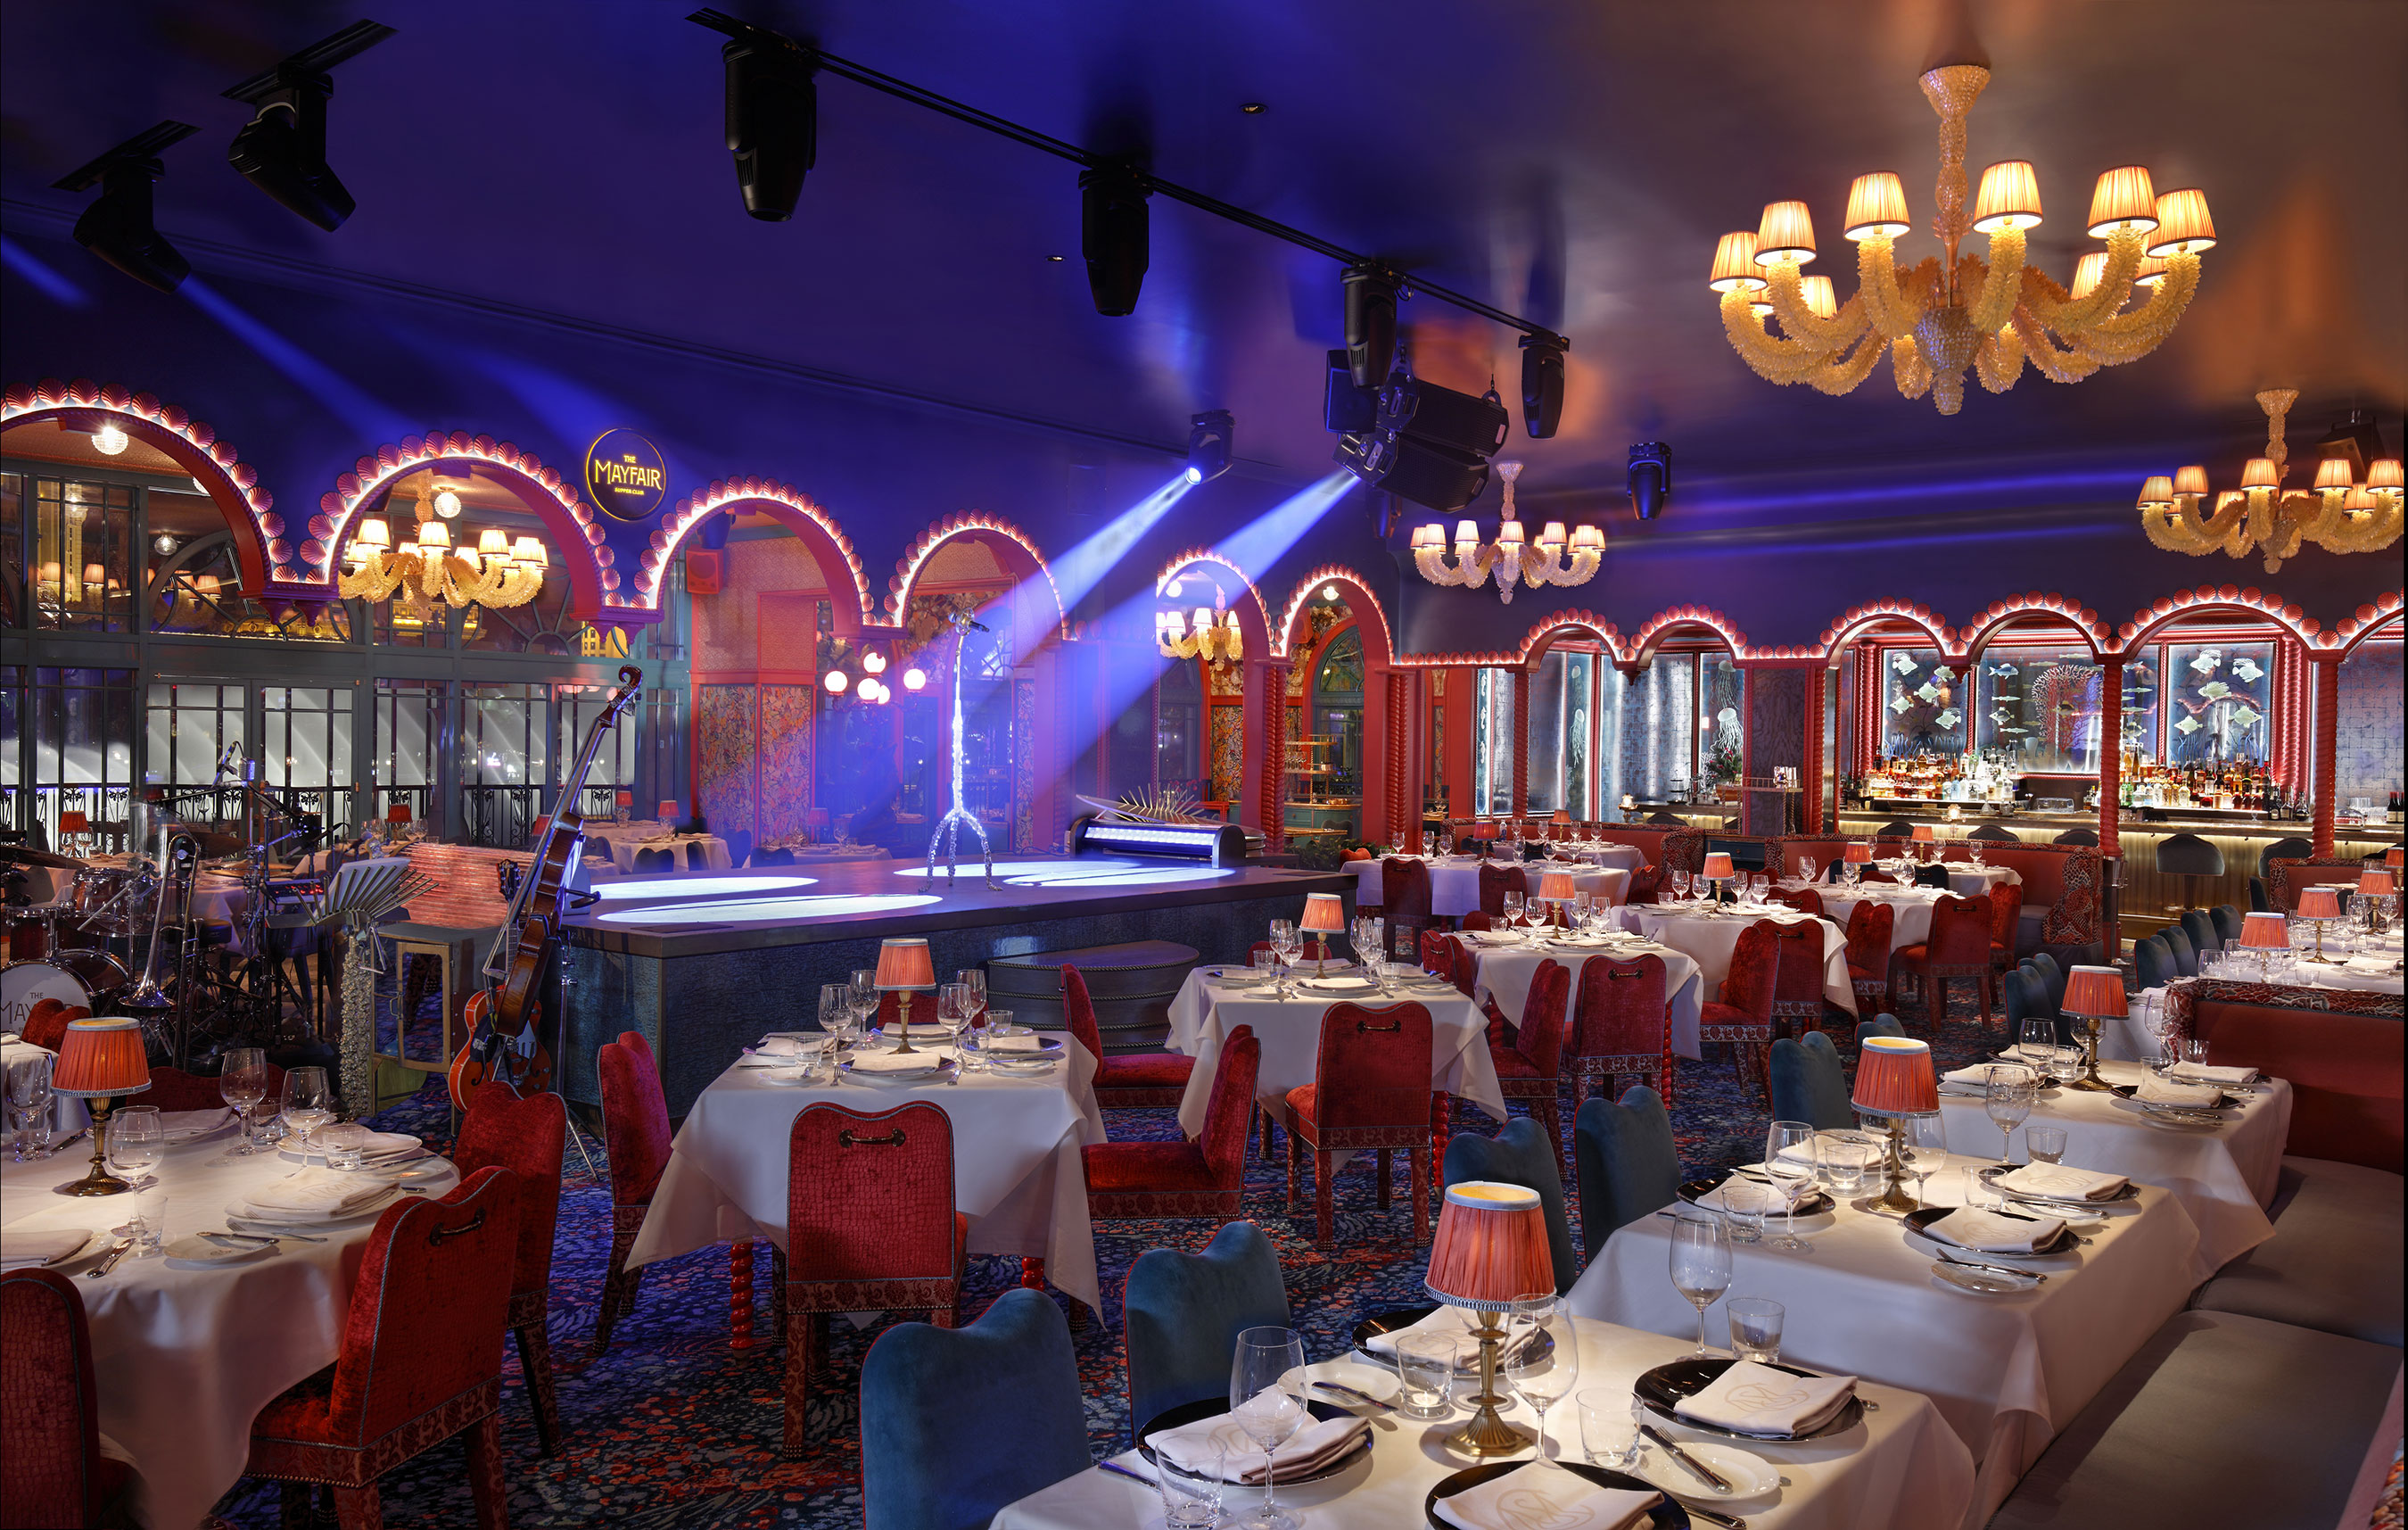 Martin Brudnizki's main dining room design at The Mayfair Supper Club draws inspiration from the whirlwind glamour of old Vegas and Hollywood, and the restaurant's waterfront locale.